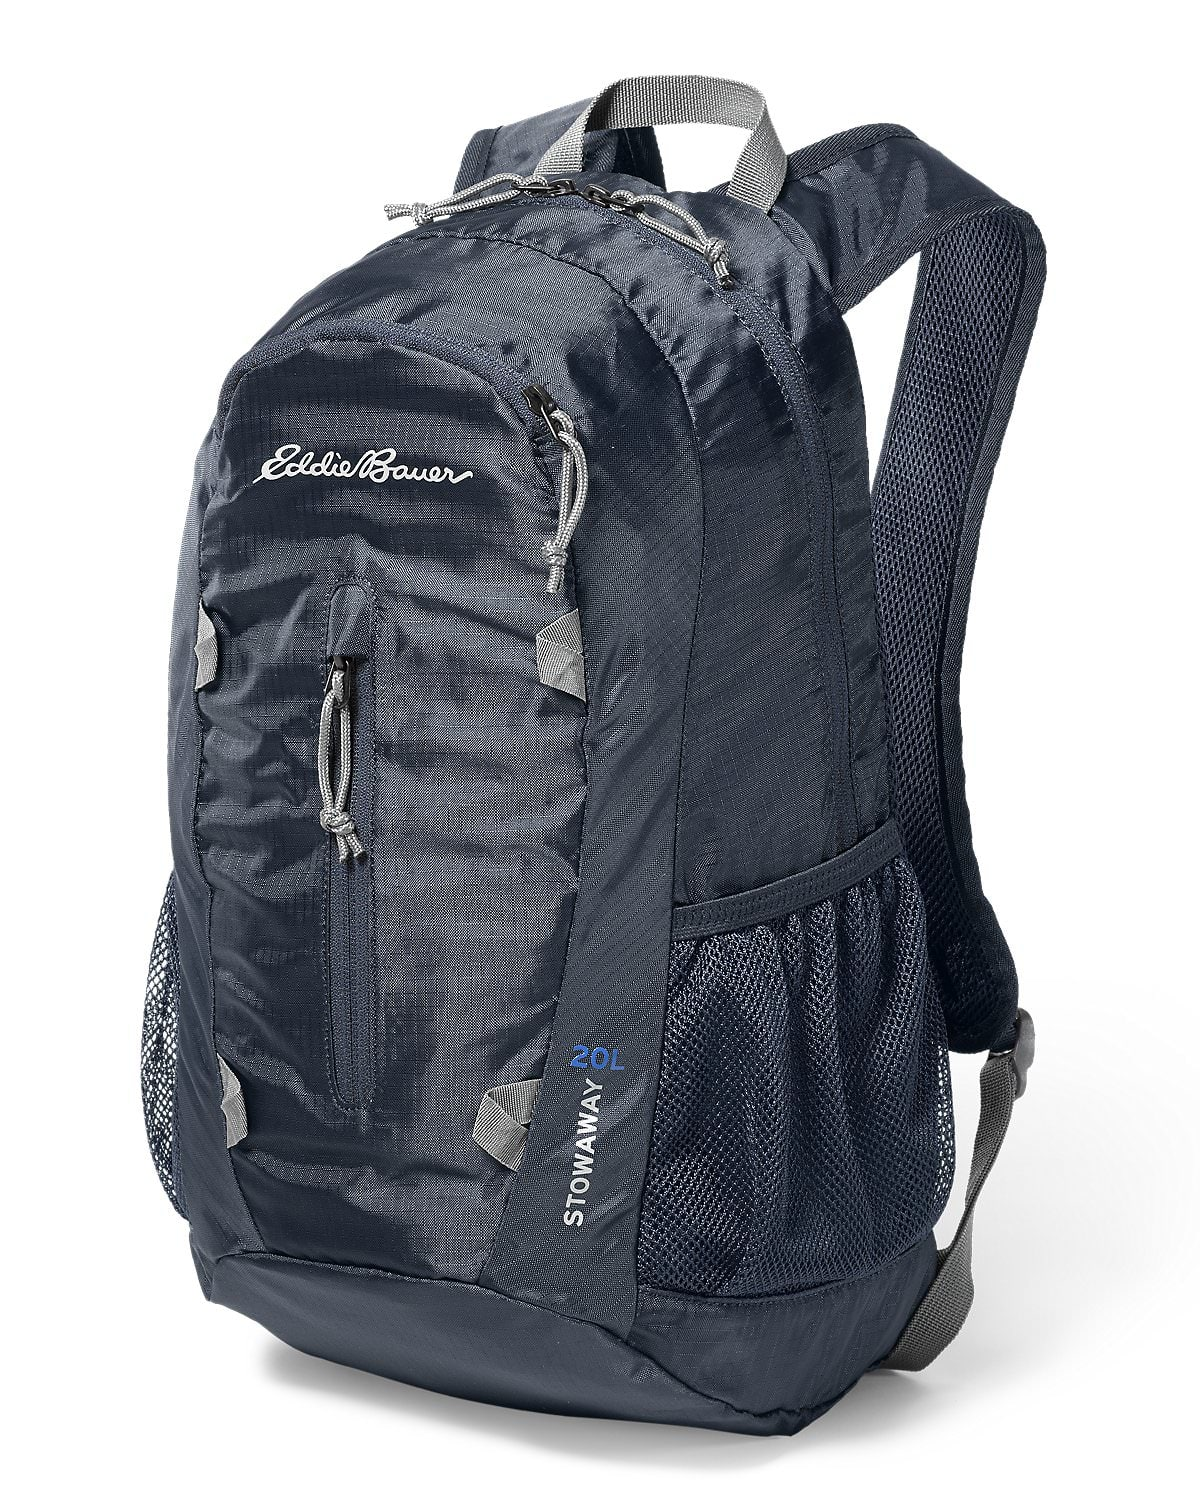 20L Eddie Bauer Stowaway Packable Daypack (various colors) $15 + free shipping, More